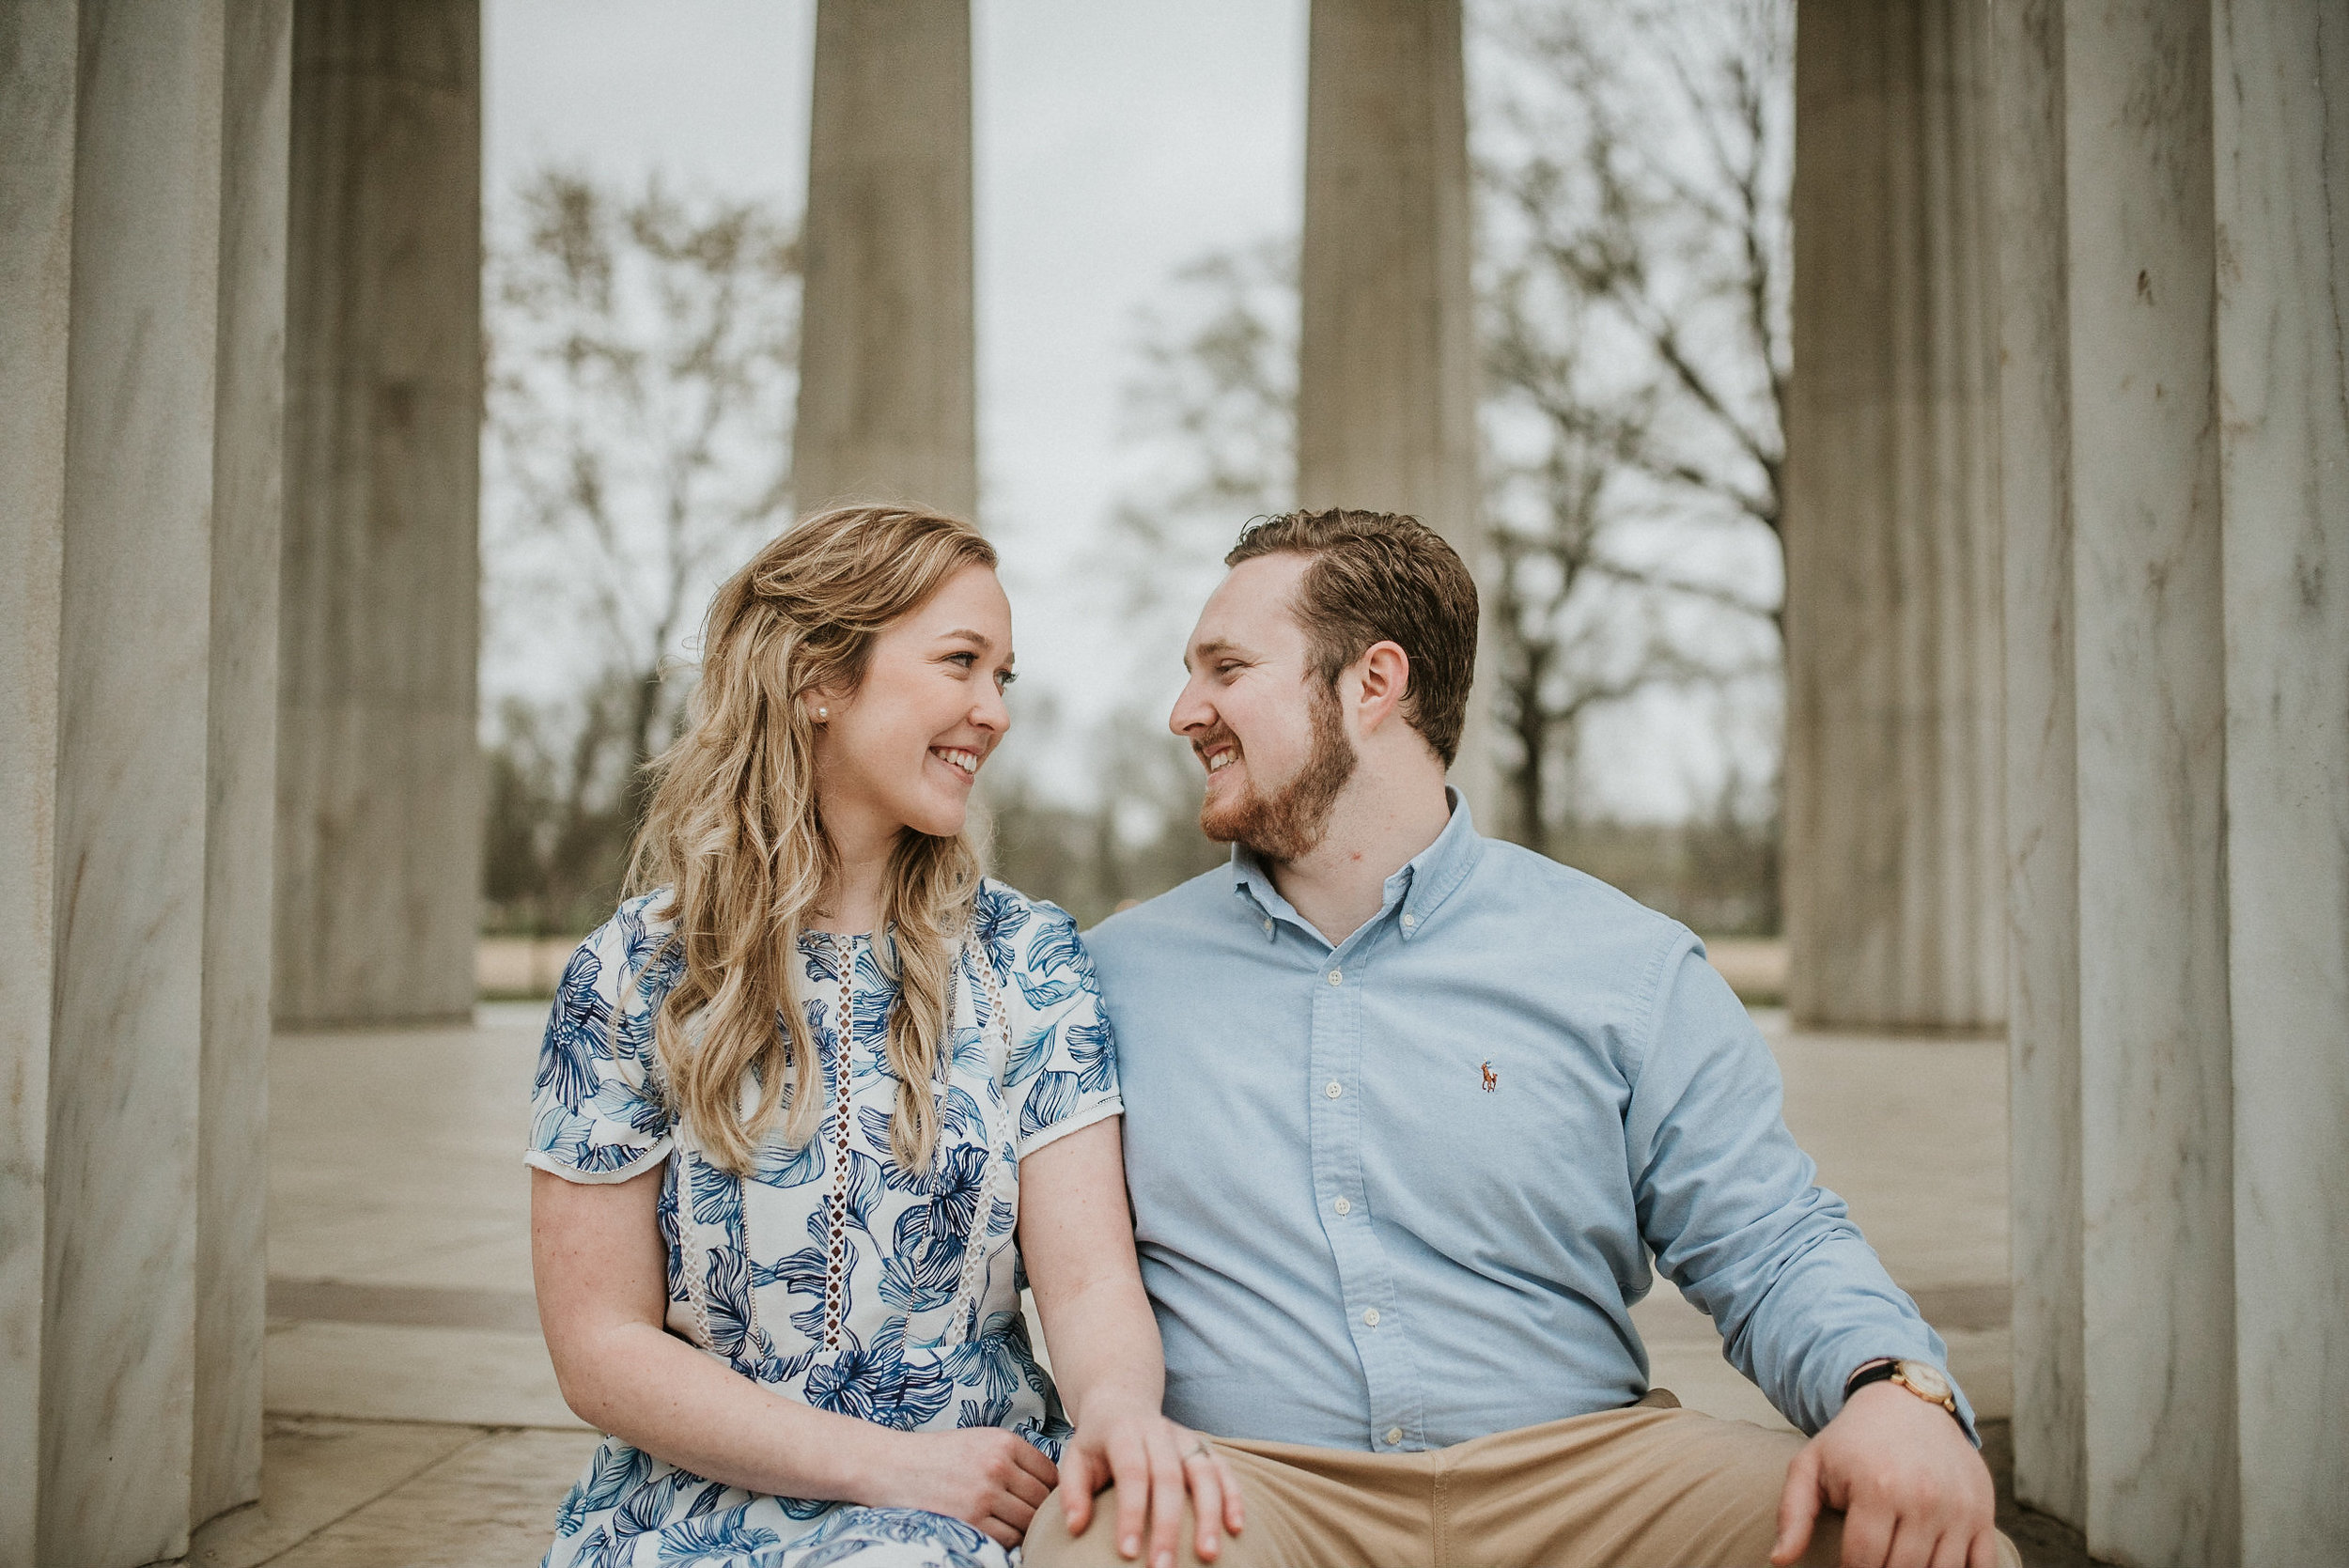 Couple smiling at one another on steps